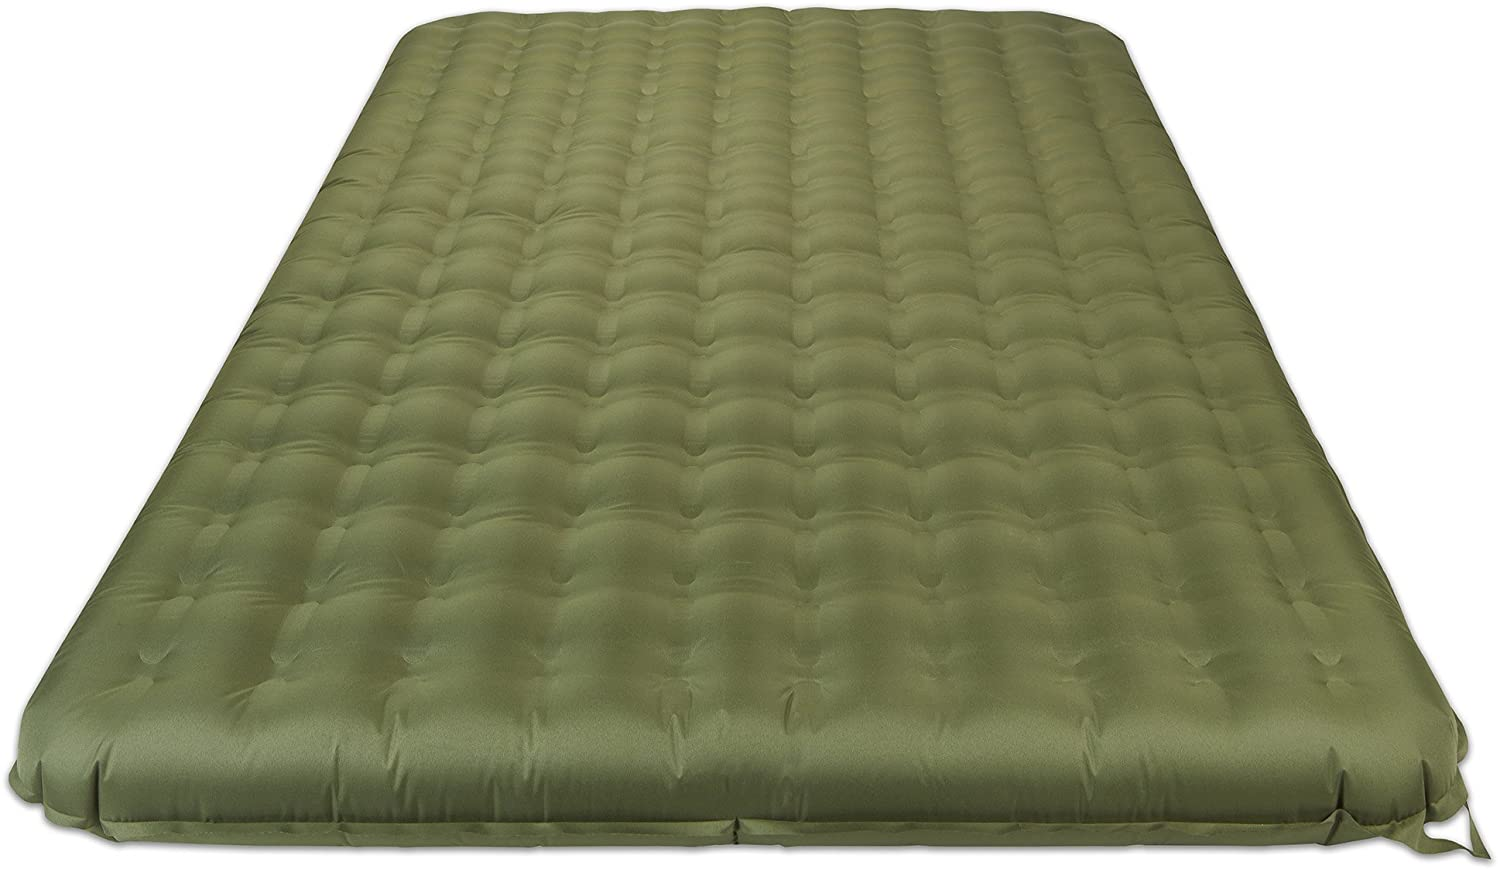 Best thin air mattress for camping 5 top models air bed for Best mattress for lightweight person